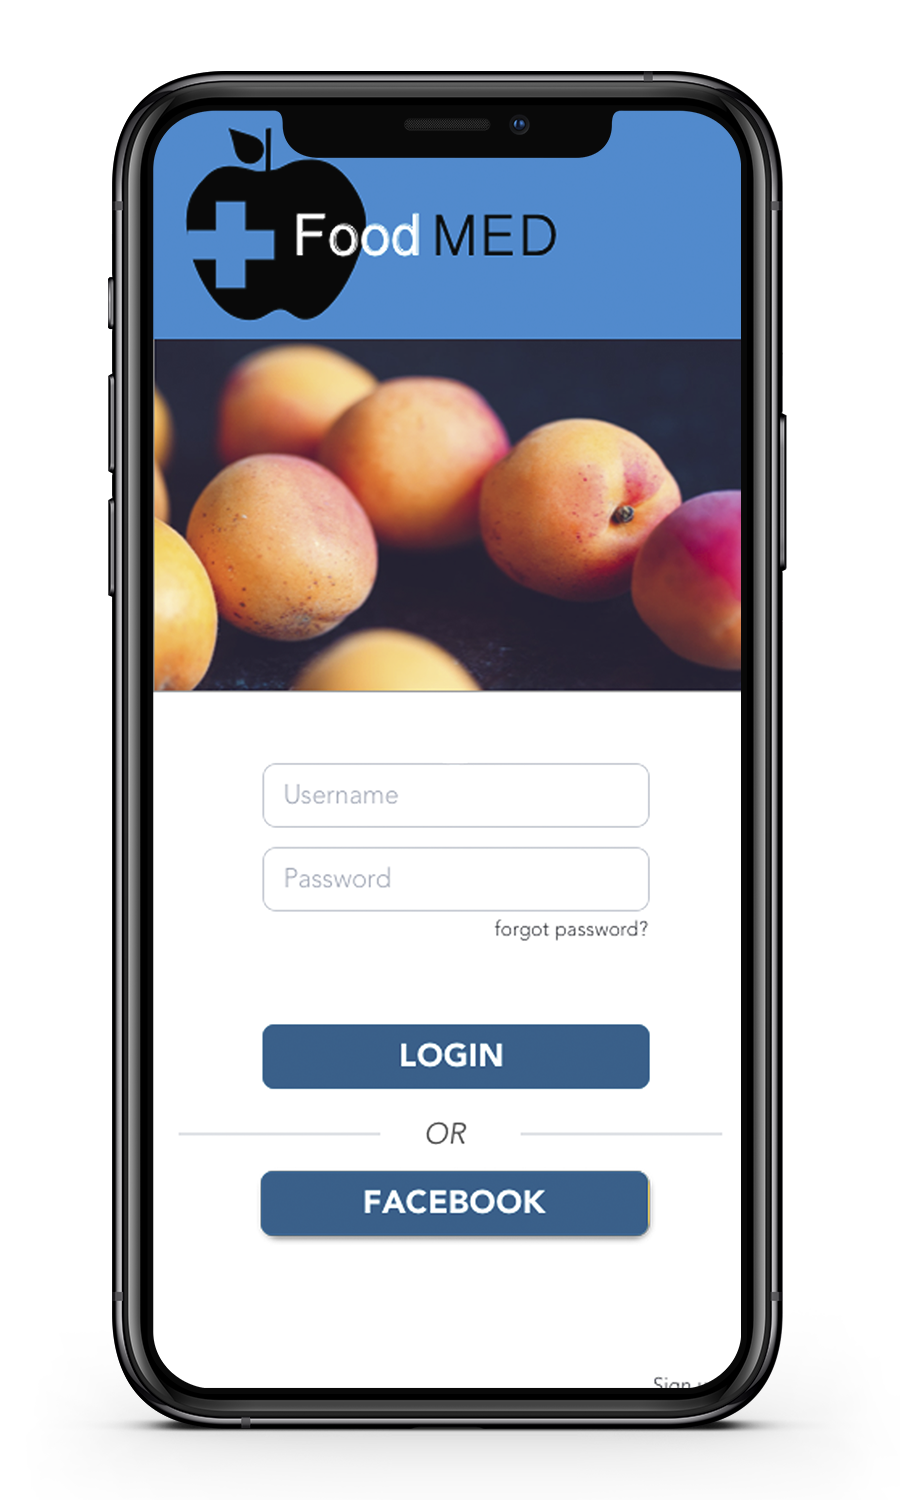 Image of Food med's login page after 2nd iteration